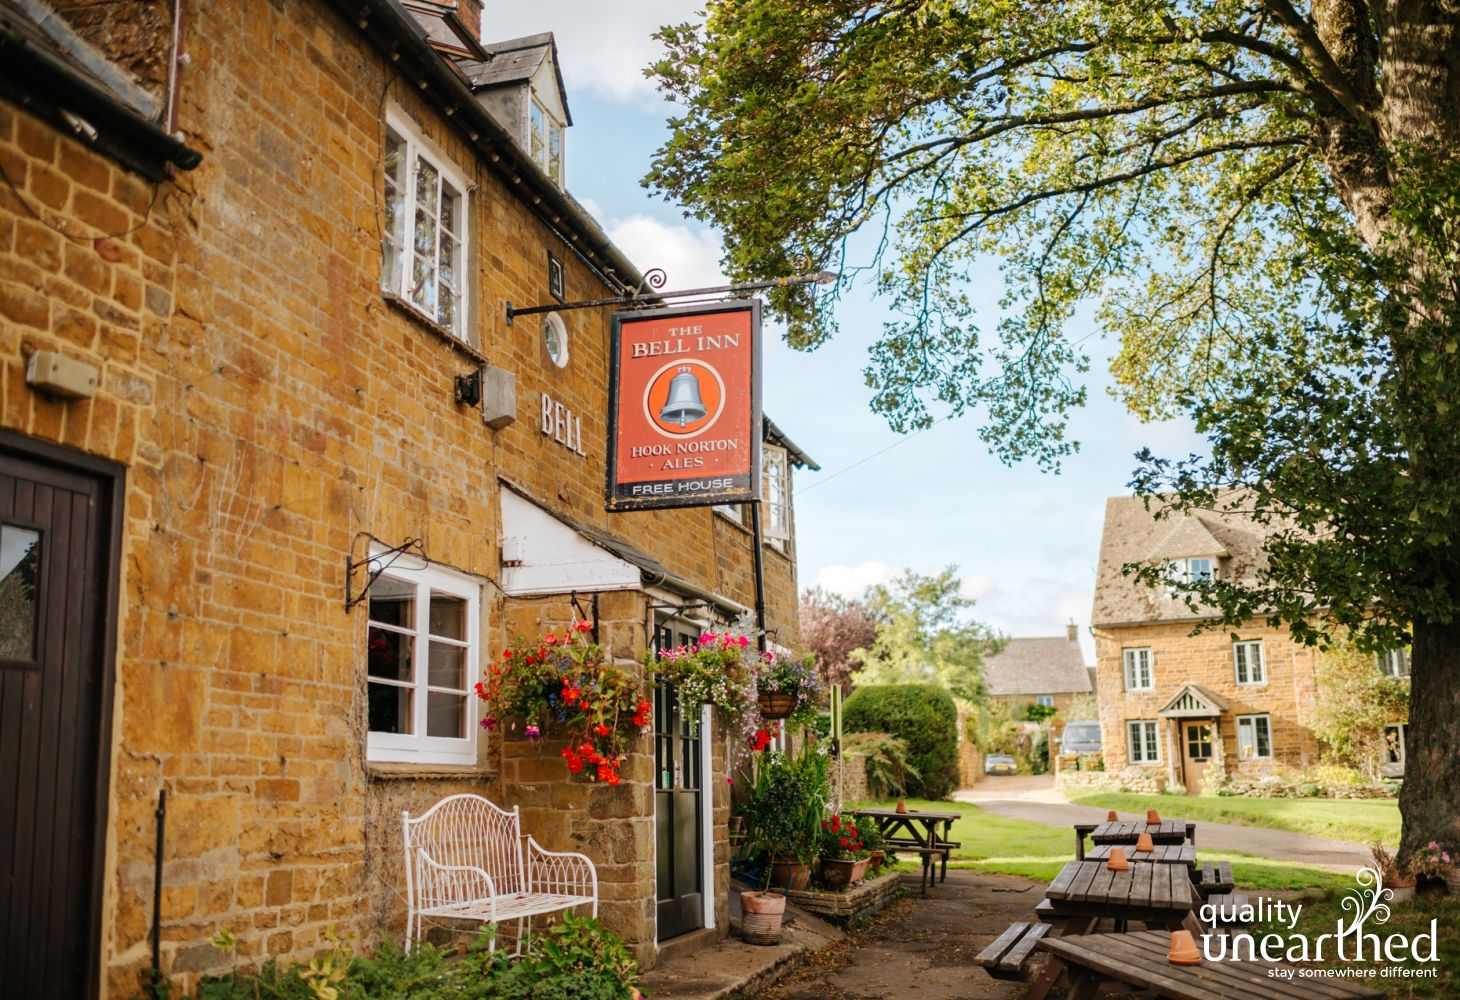 Shennington Pub is only 5 mins drive away